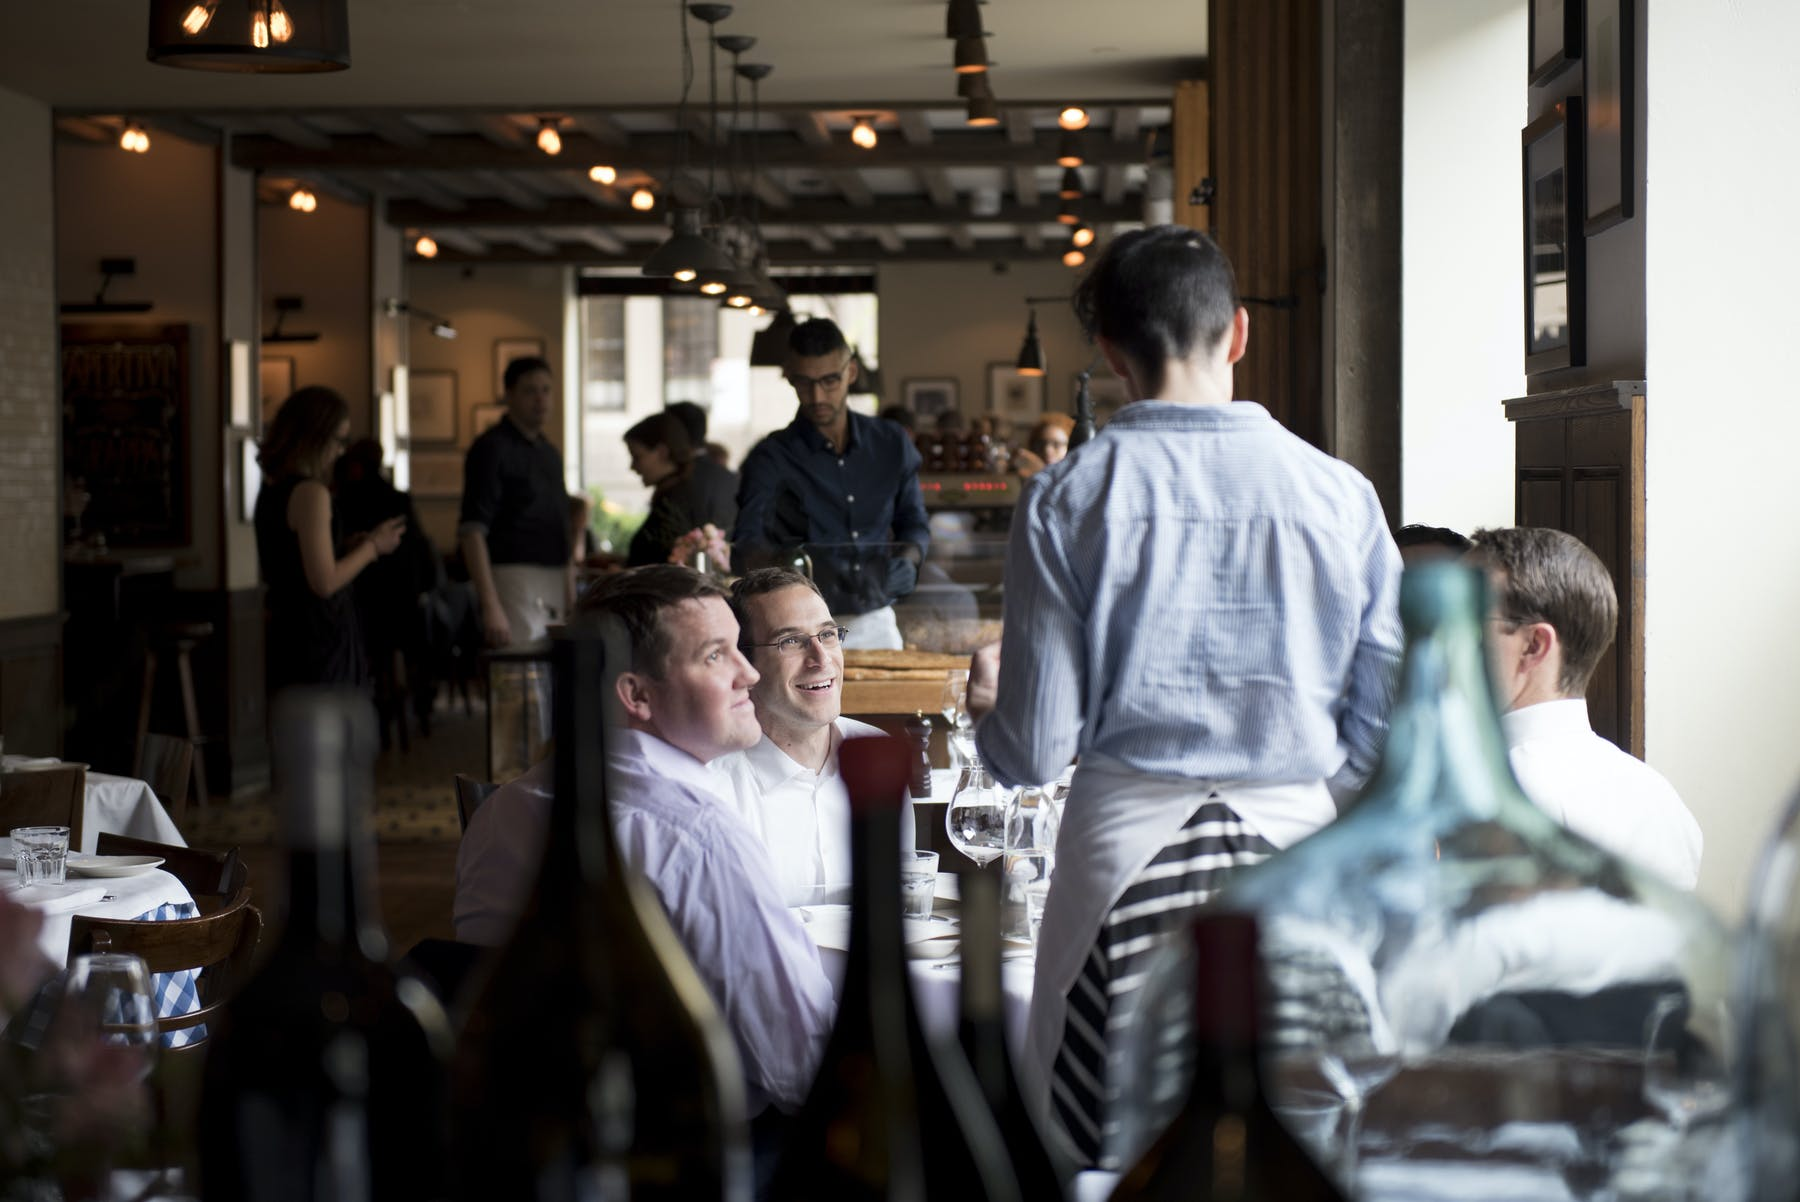 A server at Maialino interacting with guests